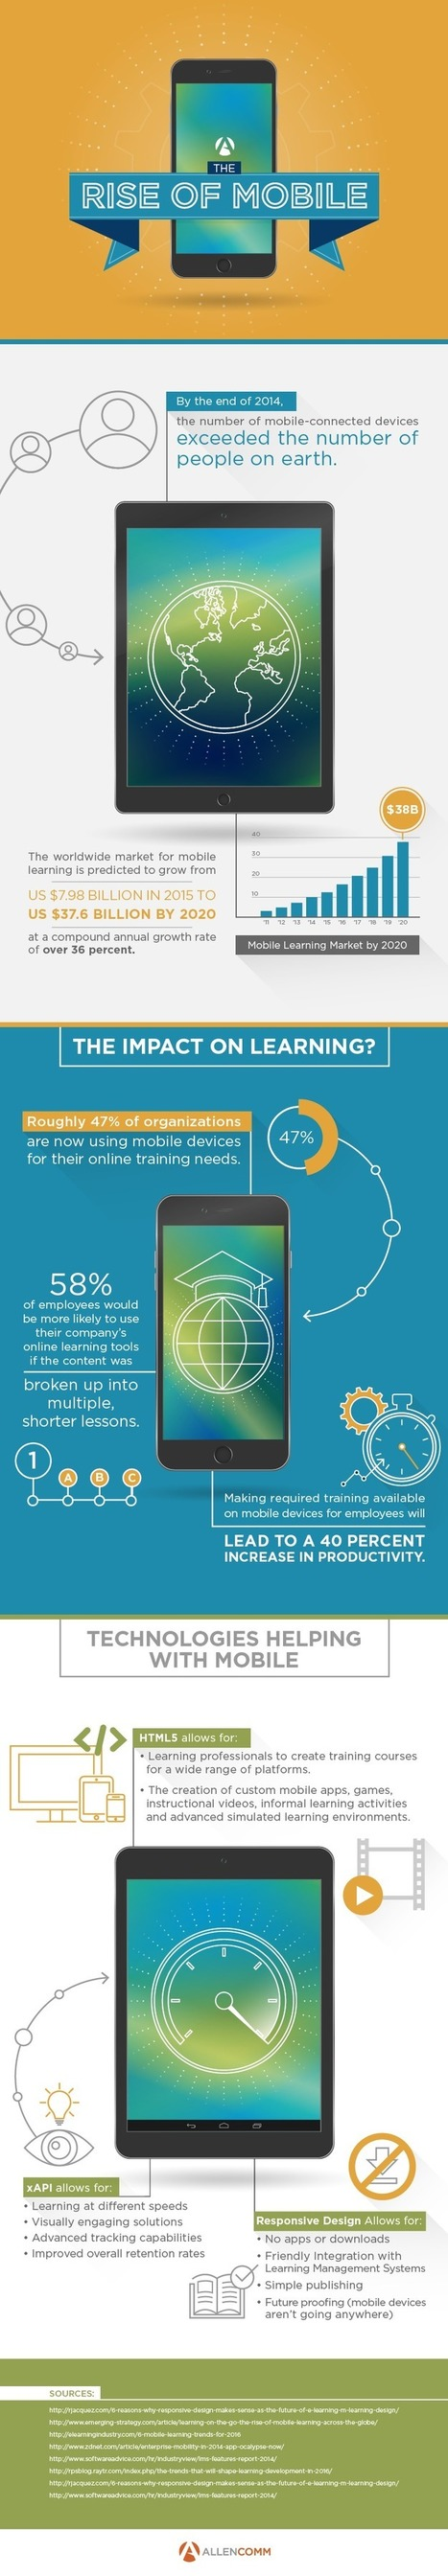 Infographie: L'émergence de l'apprentissage sur mobile | ENT | Scoop.it